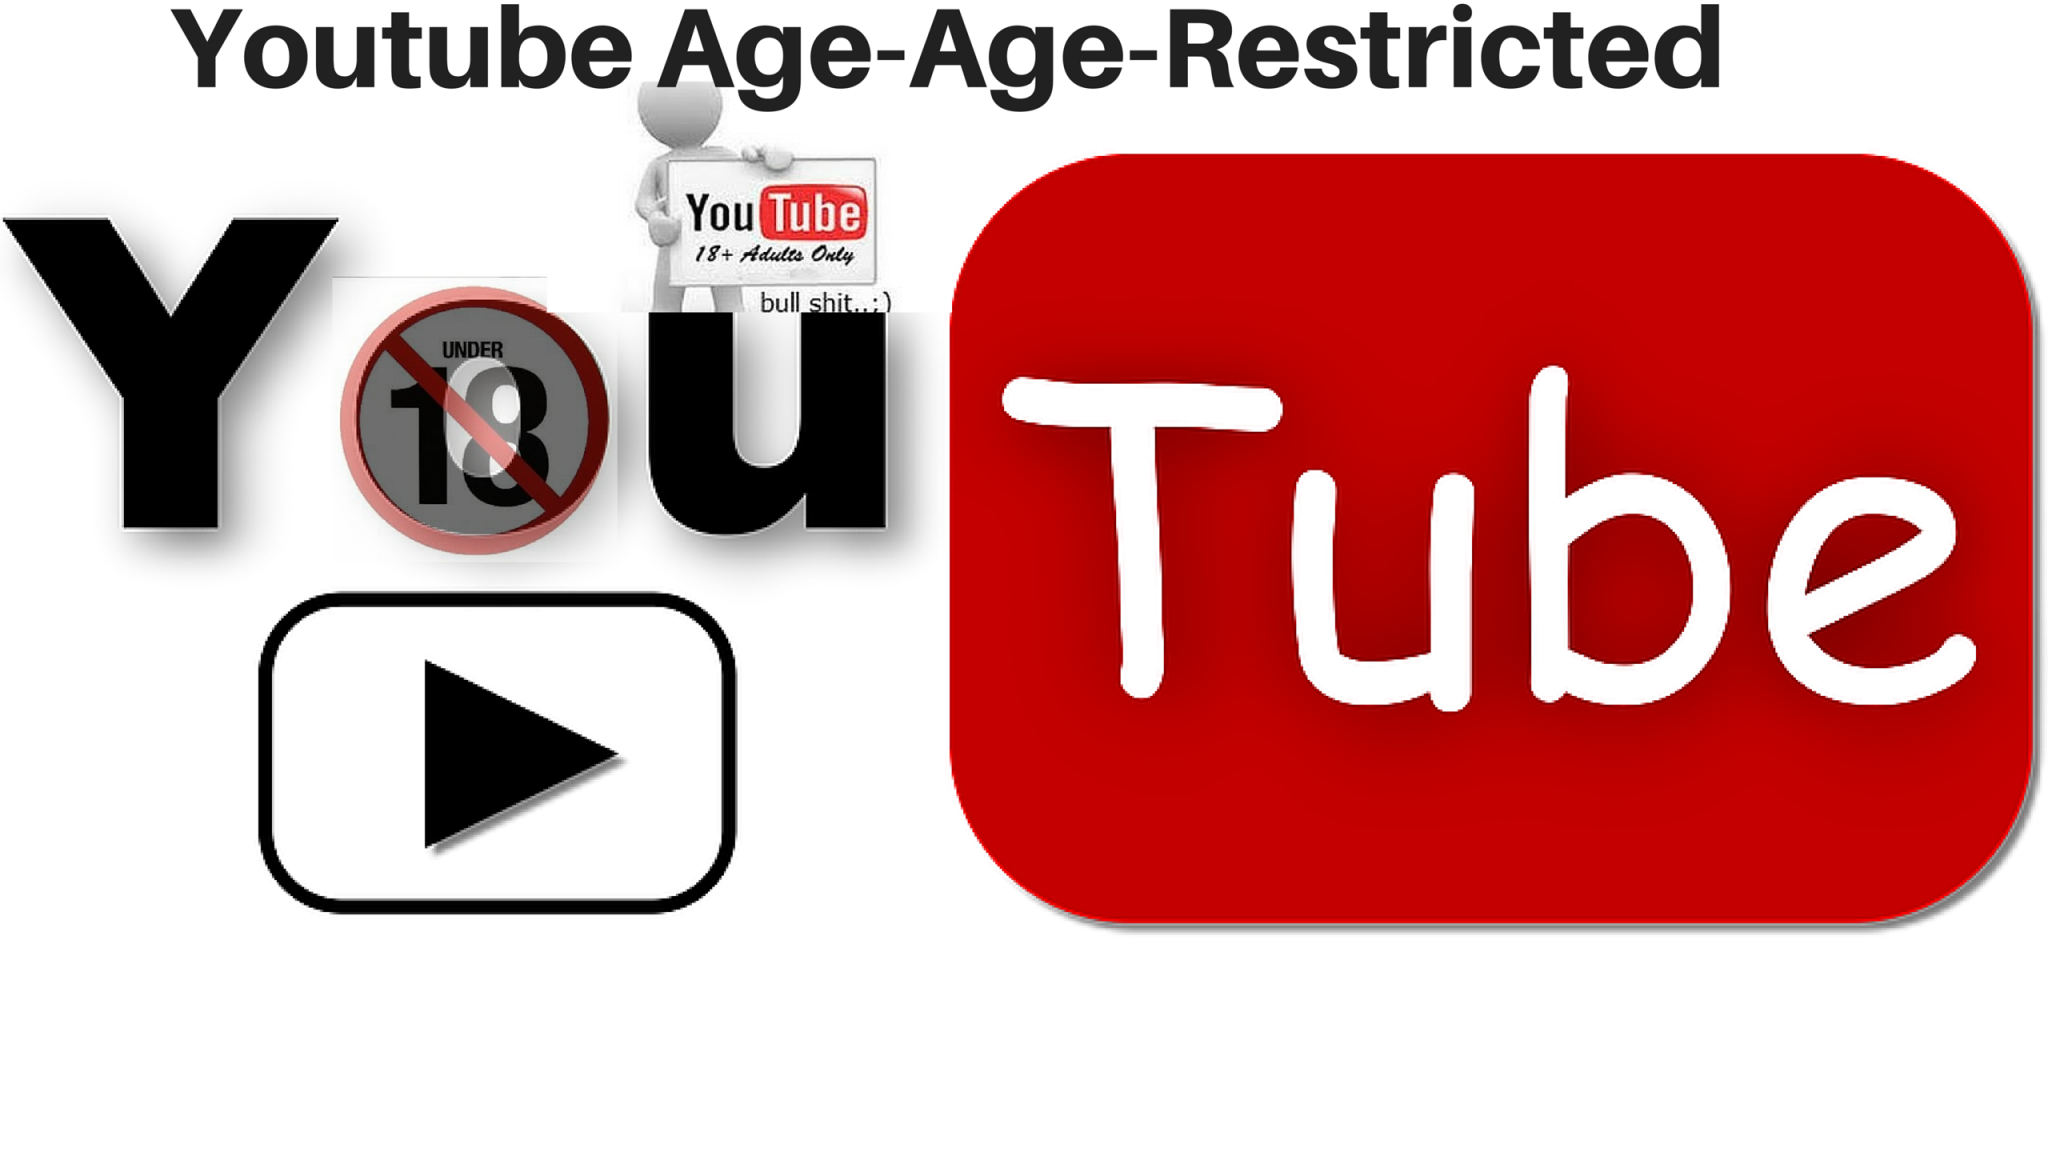 How To Watch Age-Restricted Videos On YouTube